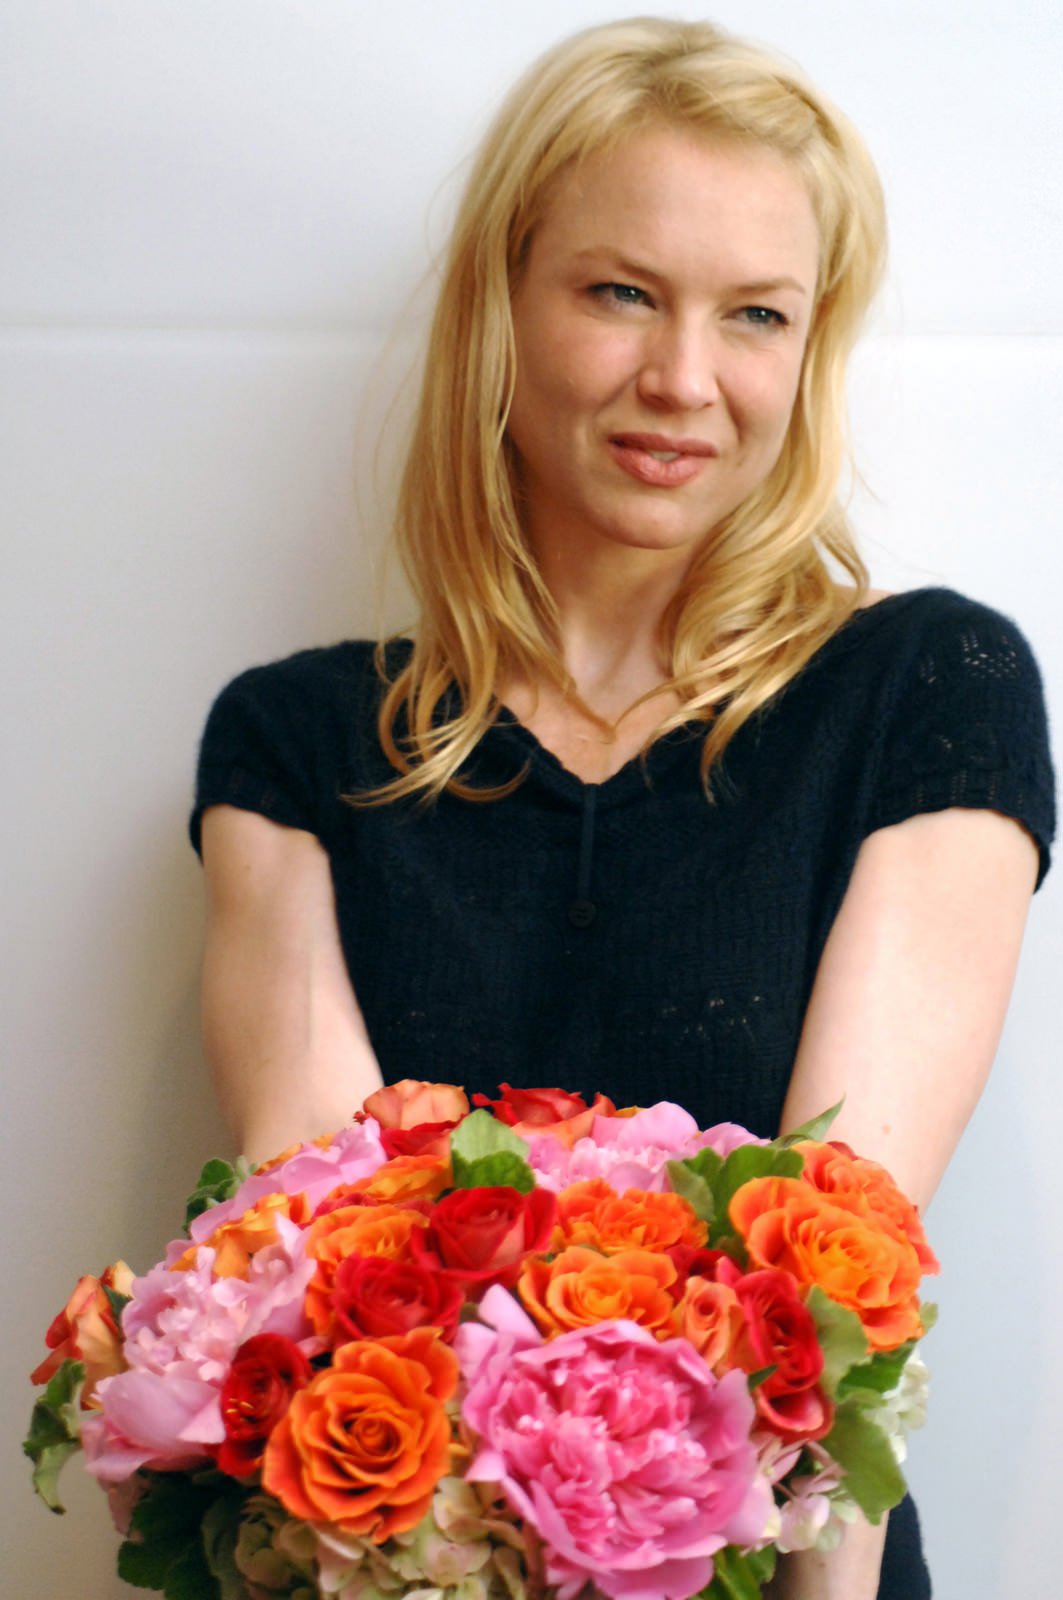 Renee Zellweger Photo Gallery